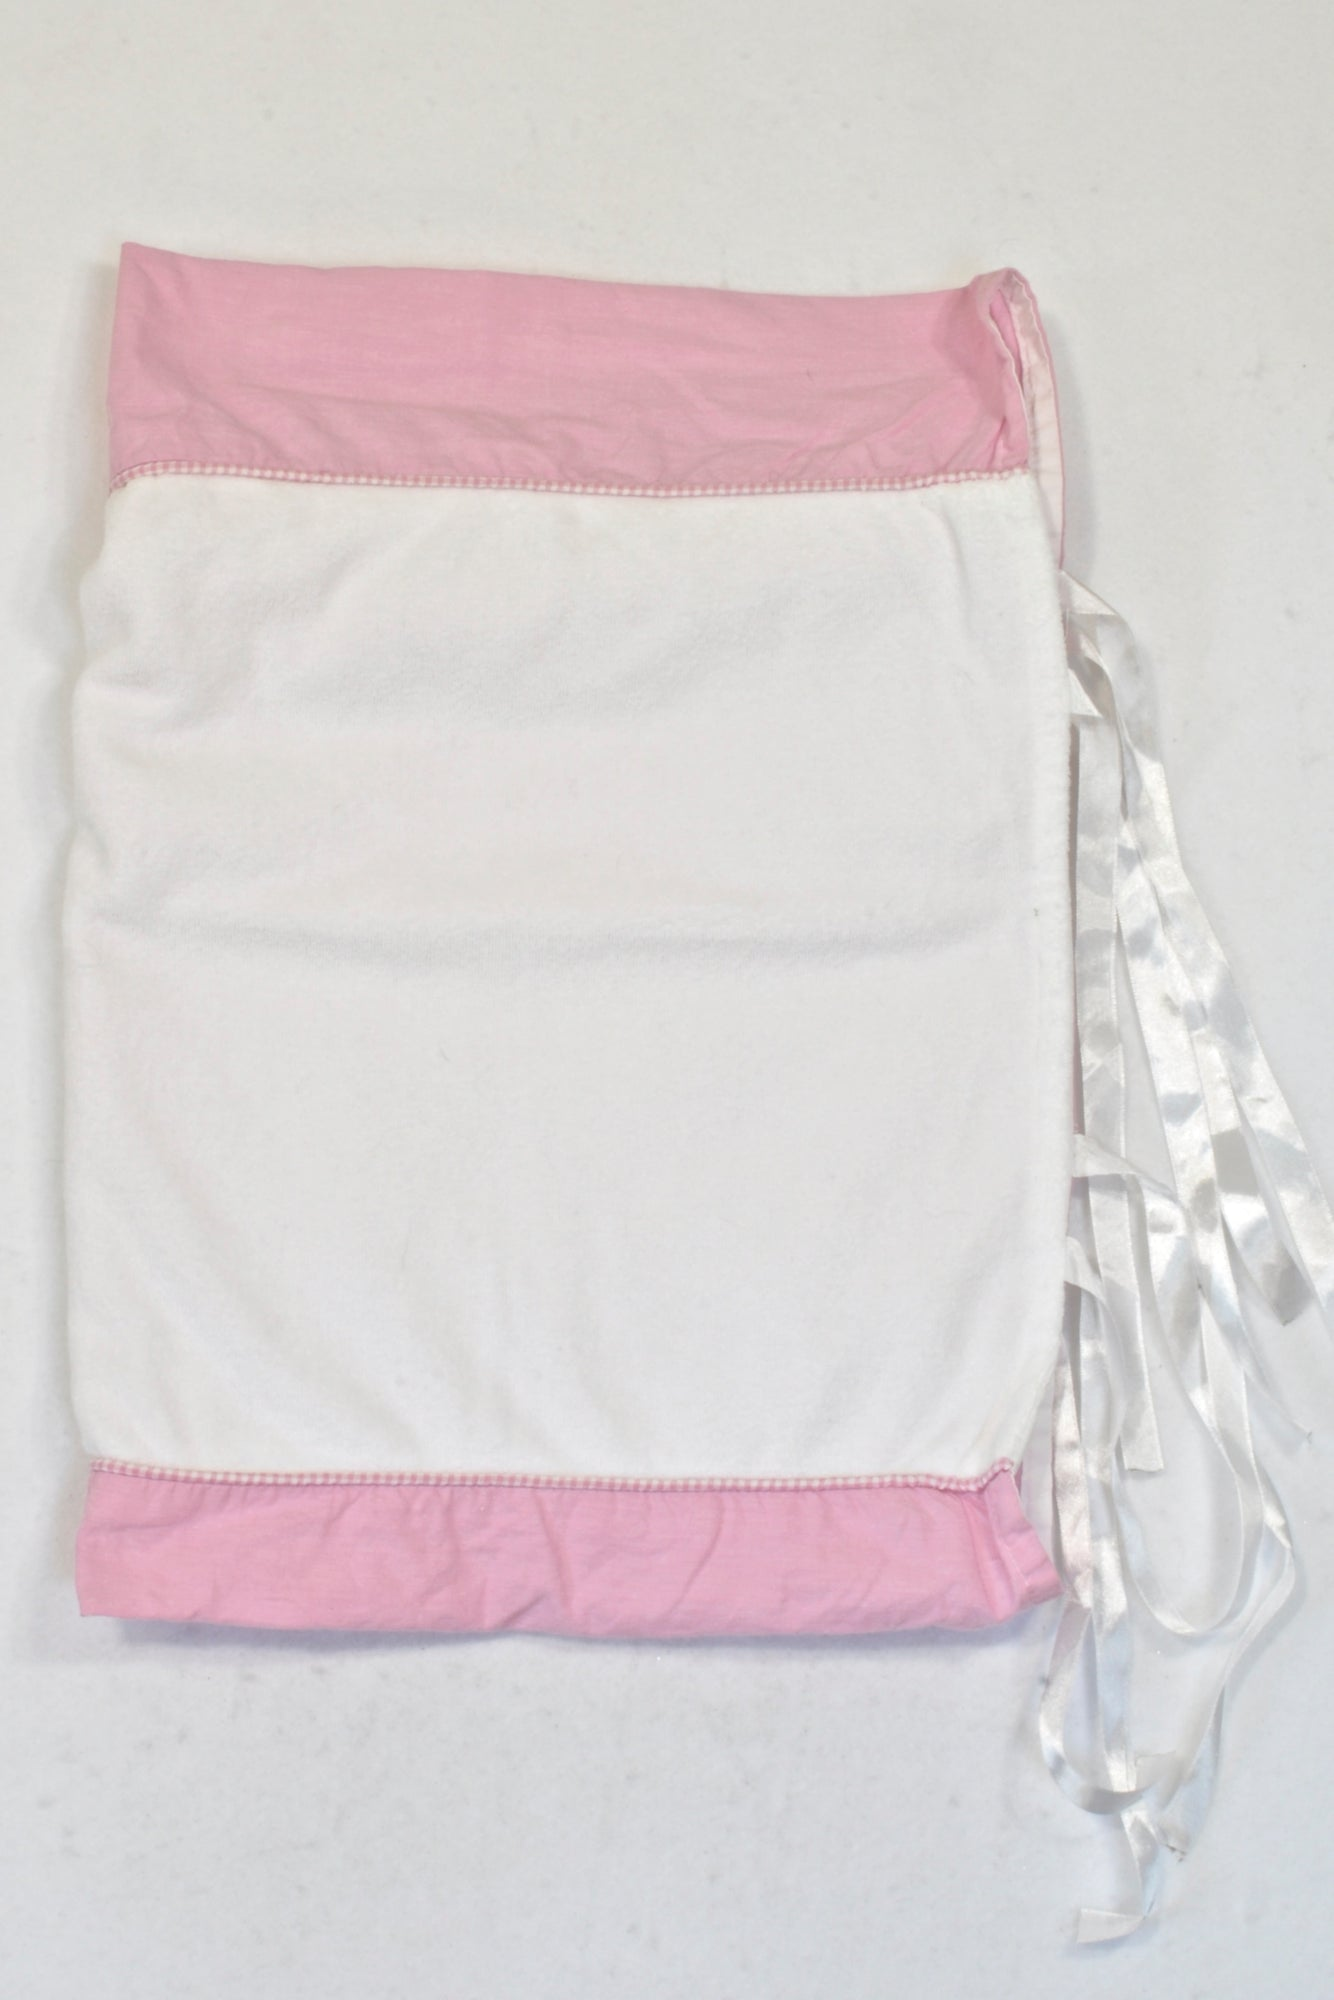 Unbranded Pink Baby Changing Mat Cover Girls N-B to 3 years